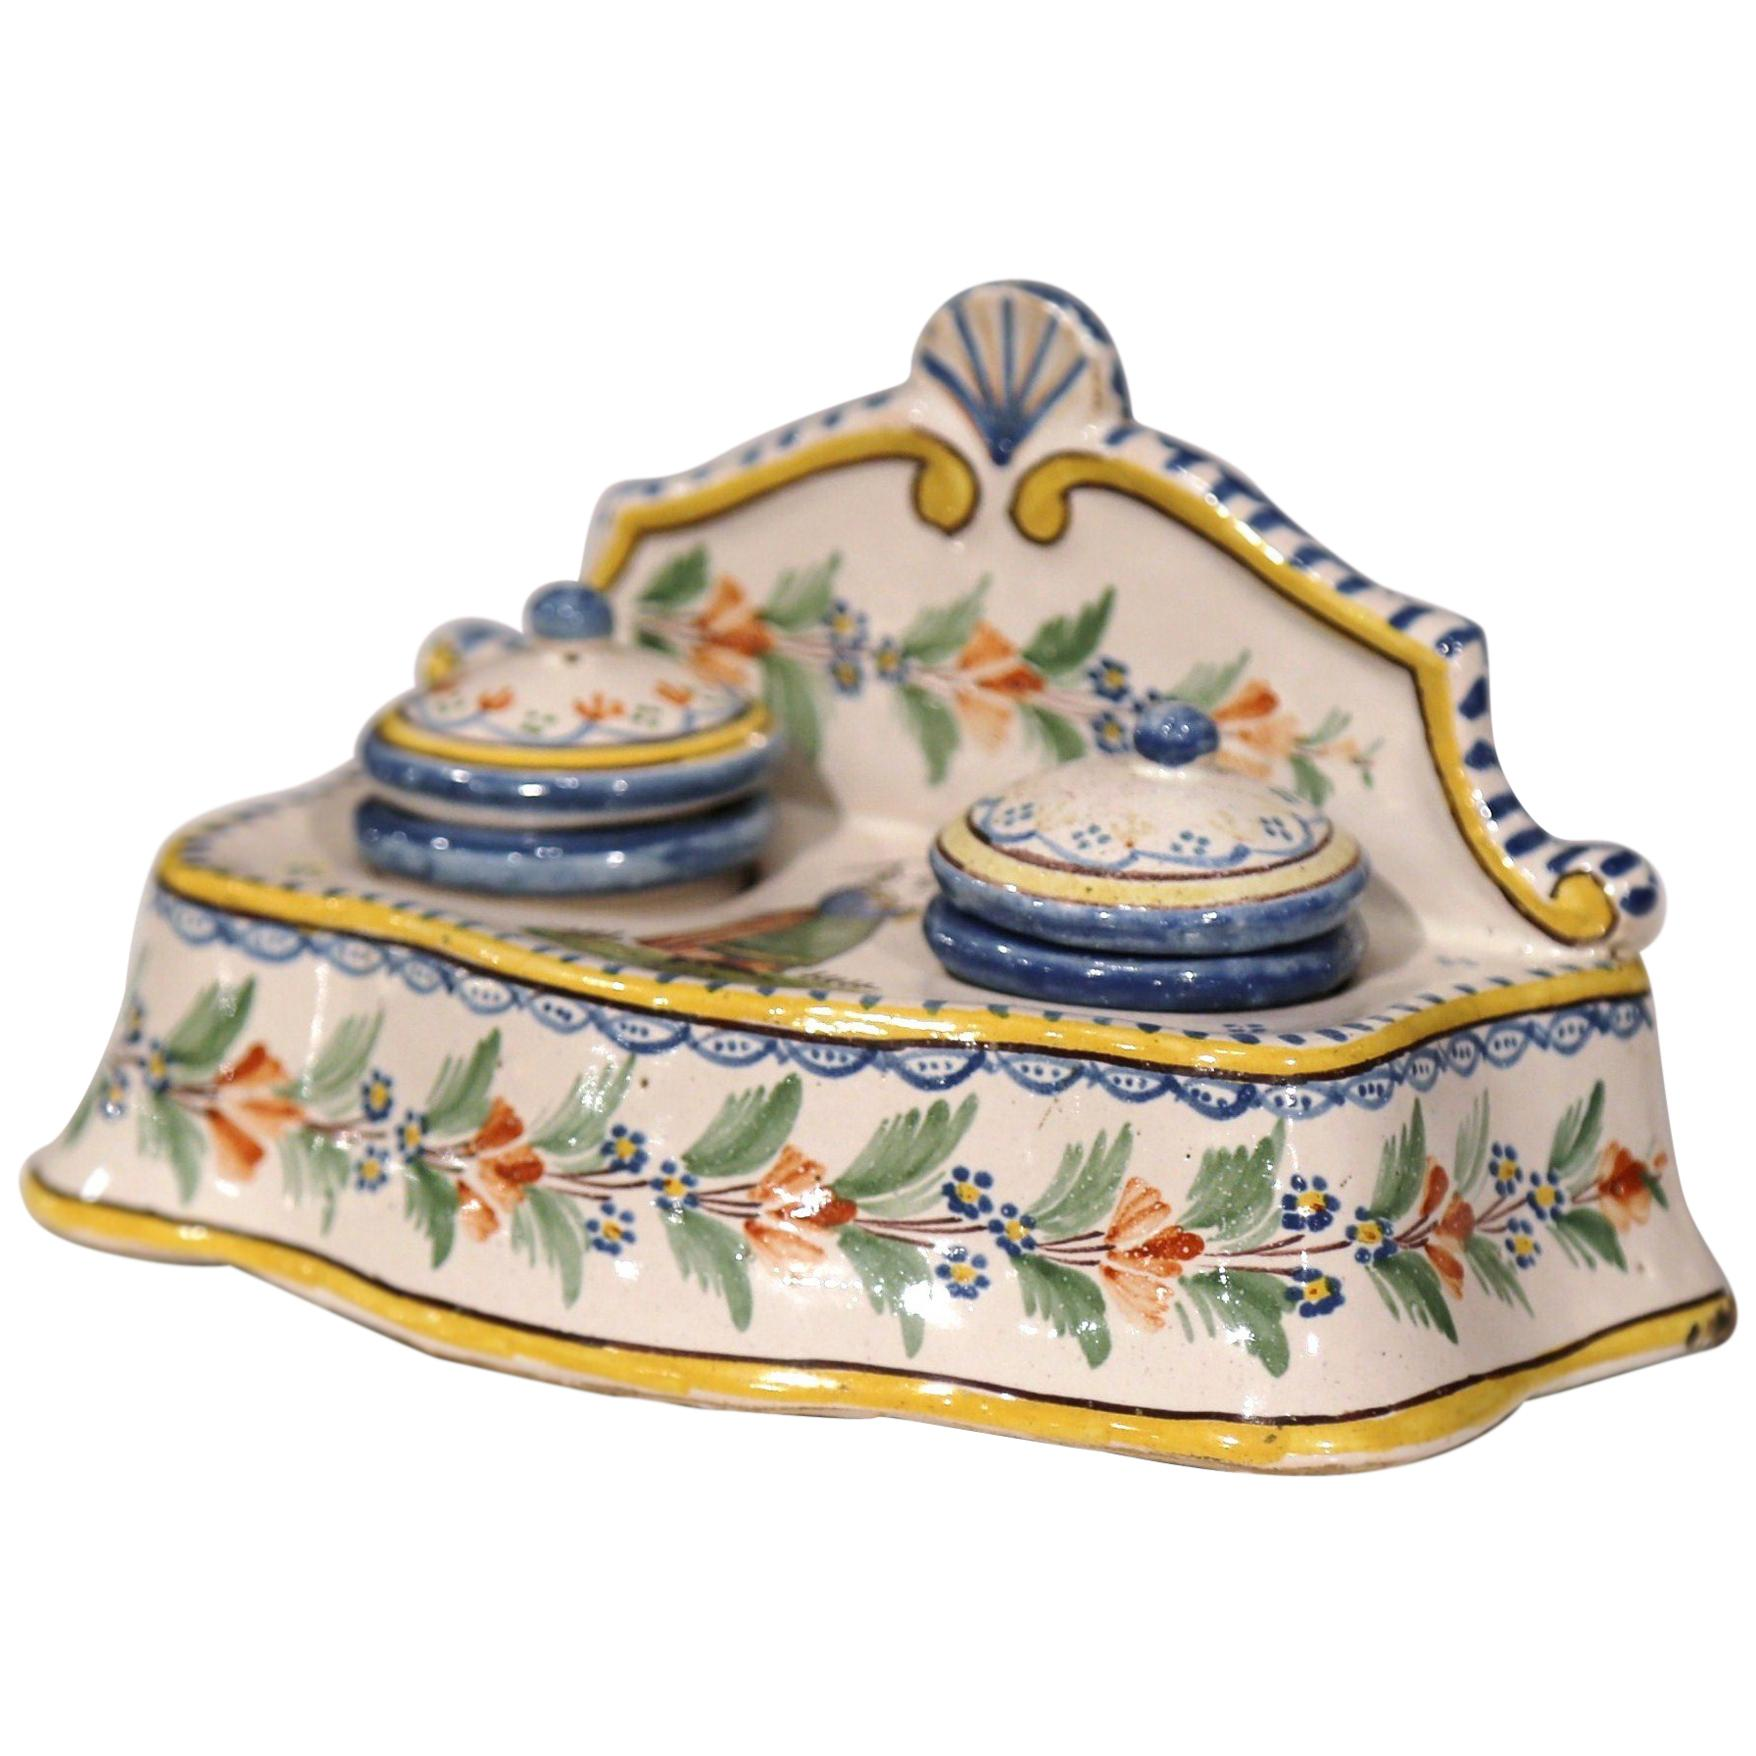 Deco Quimper Early 20th Century French Hand Painted Faience Inkwell Signed Hr Quimper